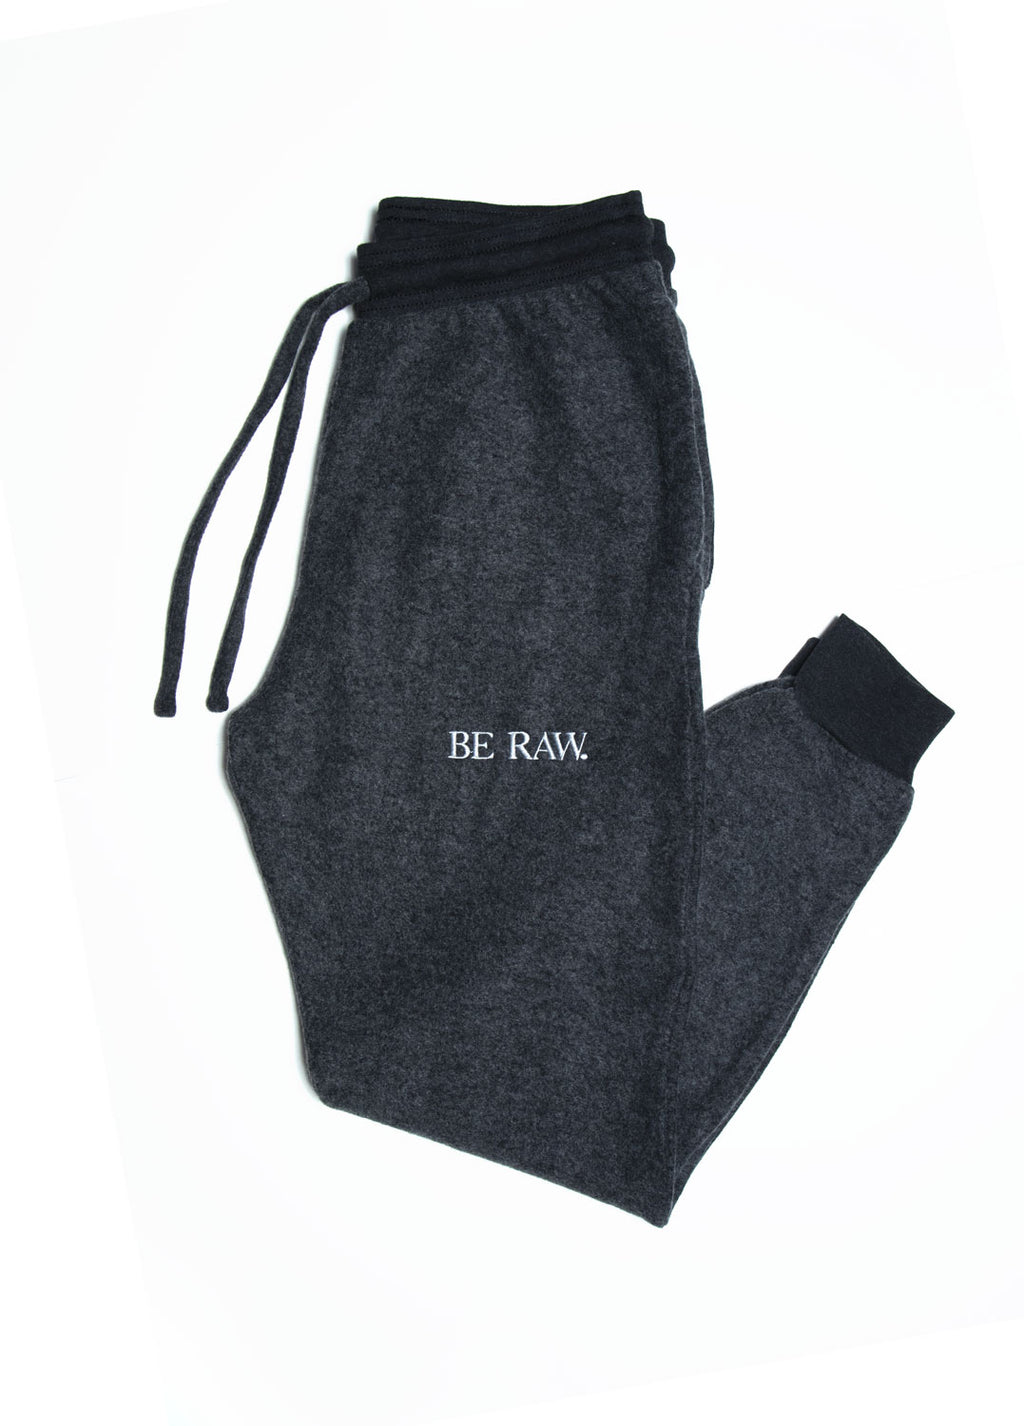 Be Raw - Sueded Fleece - Unisex Jogger (Black Heather)